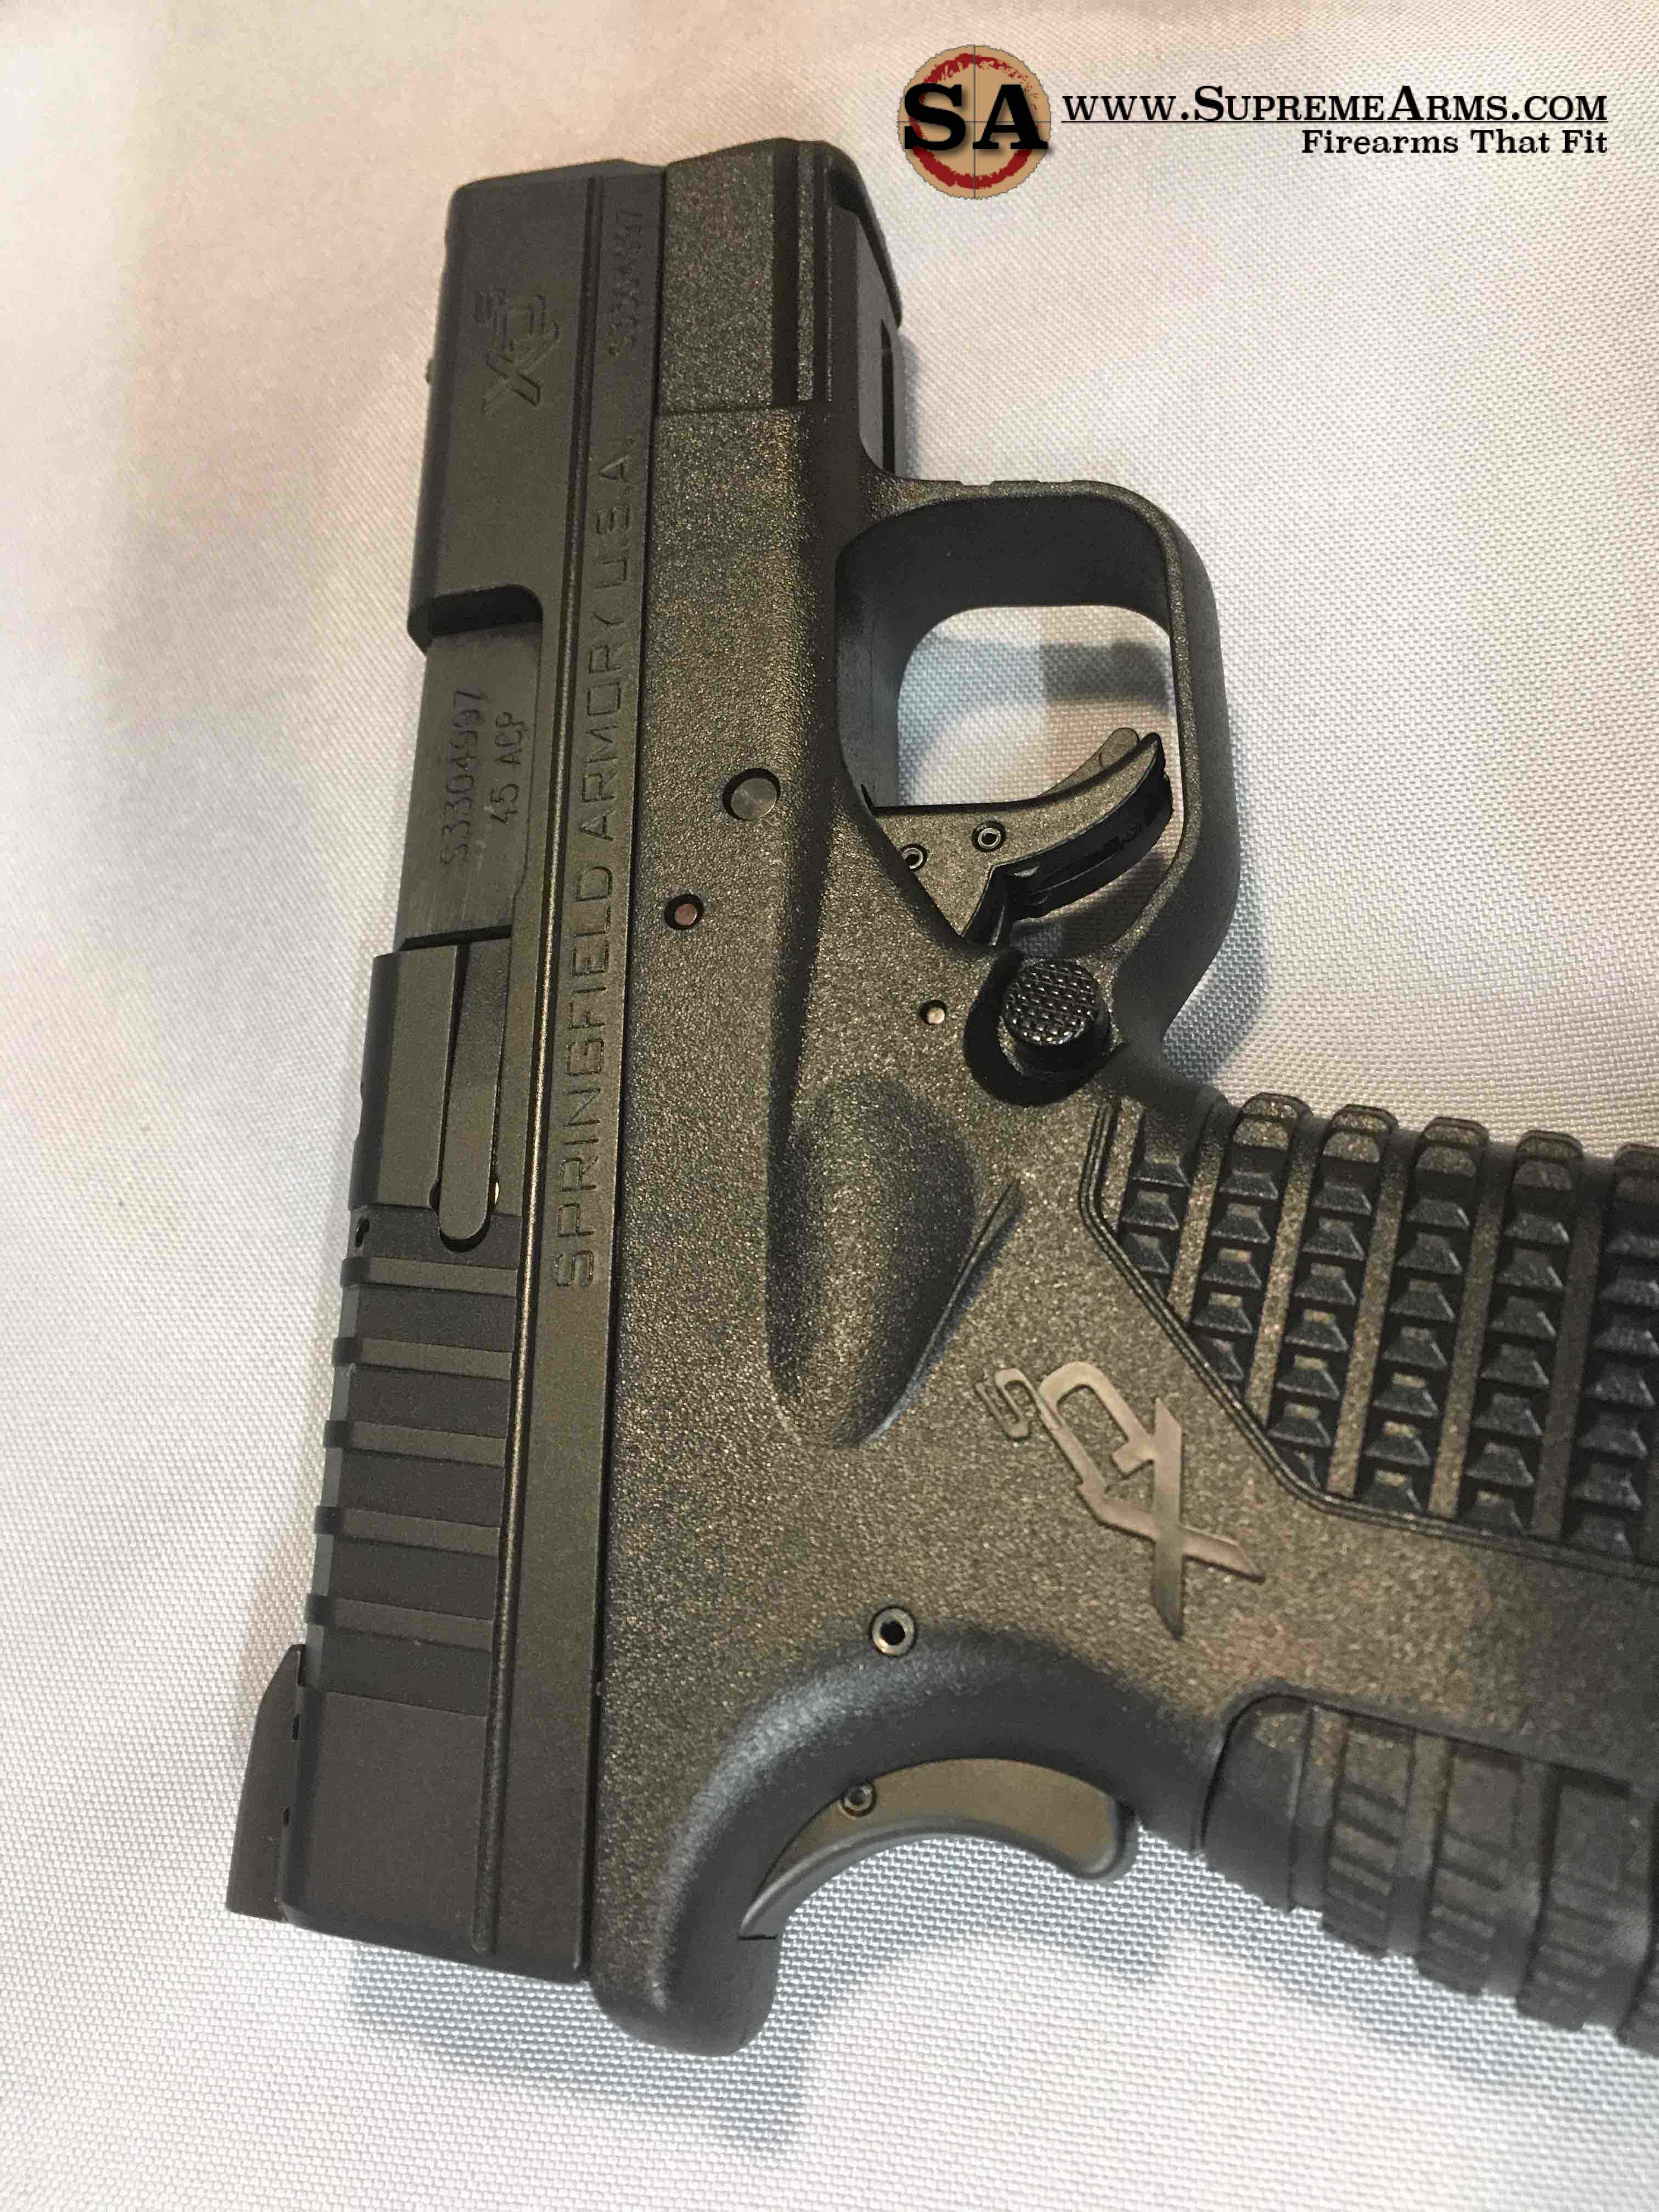 xds 45 with extended magazine